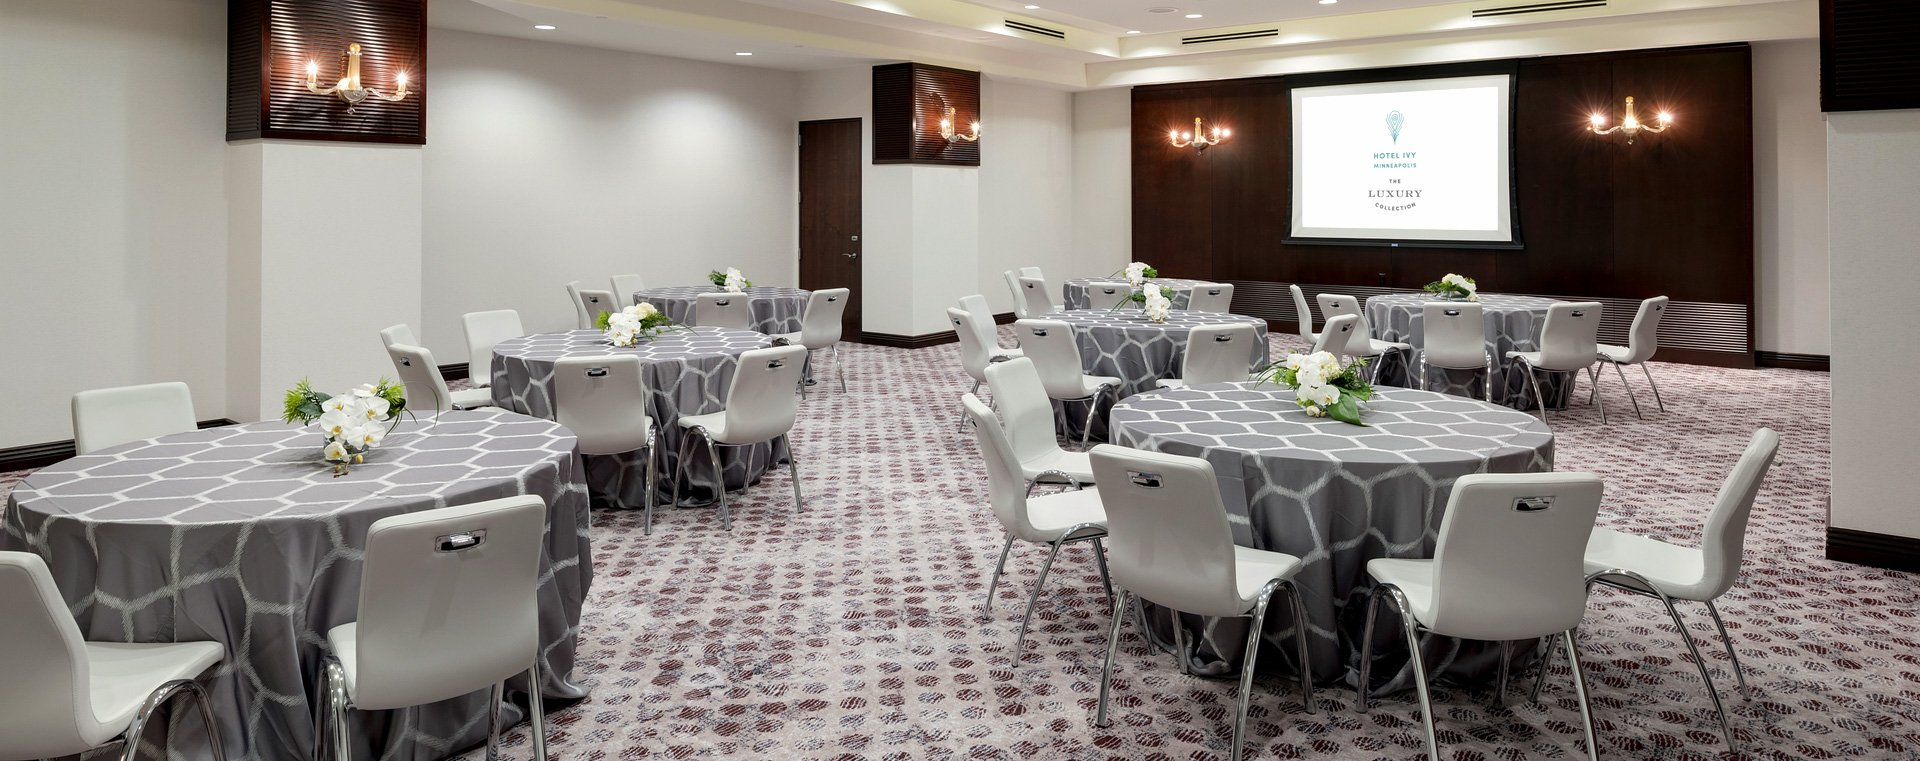 Meeting Venues at Hotel Ivy, A Luxury Collection Hotel, Minneapolis